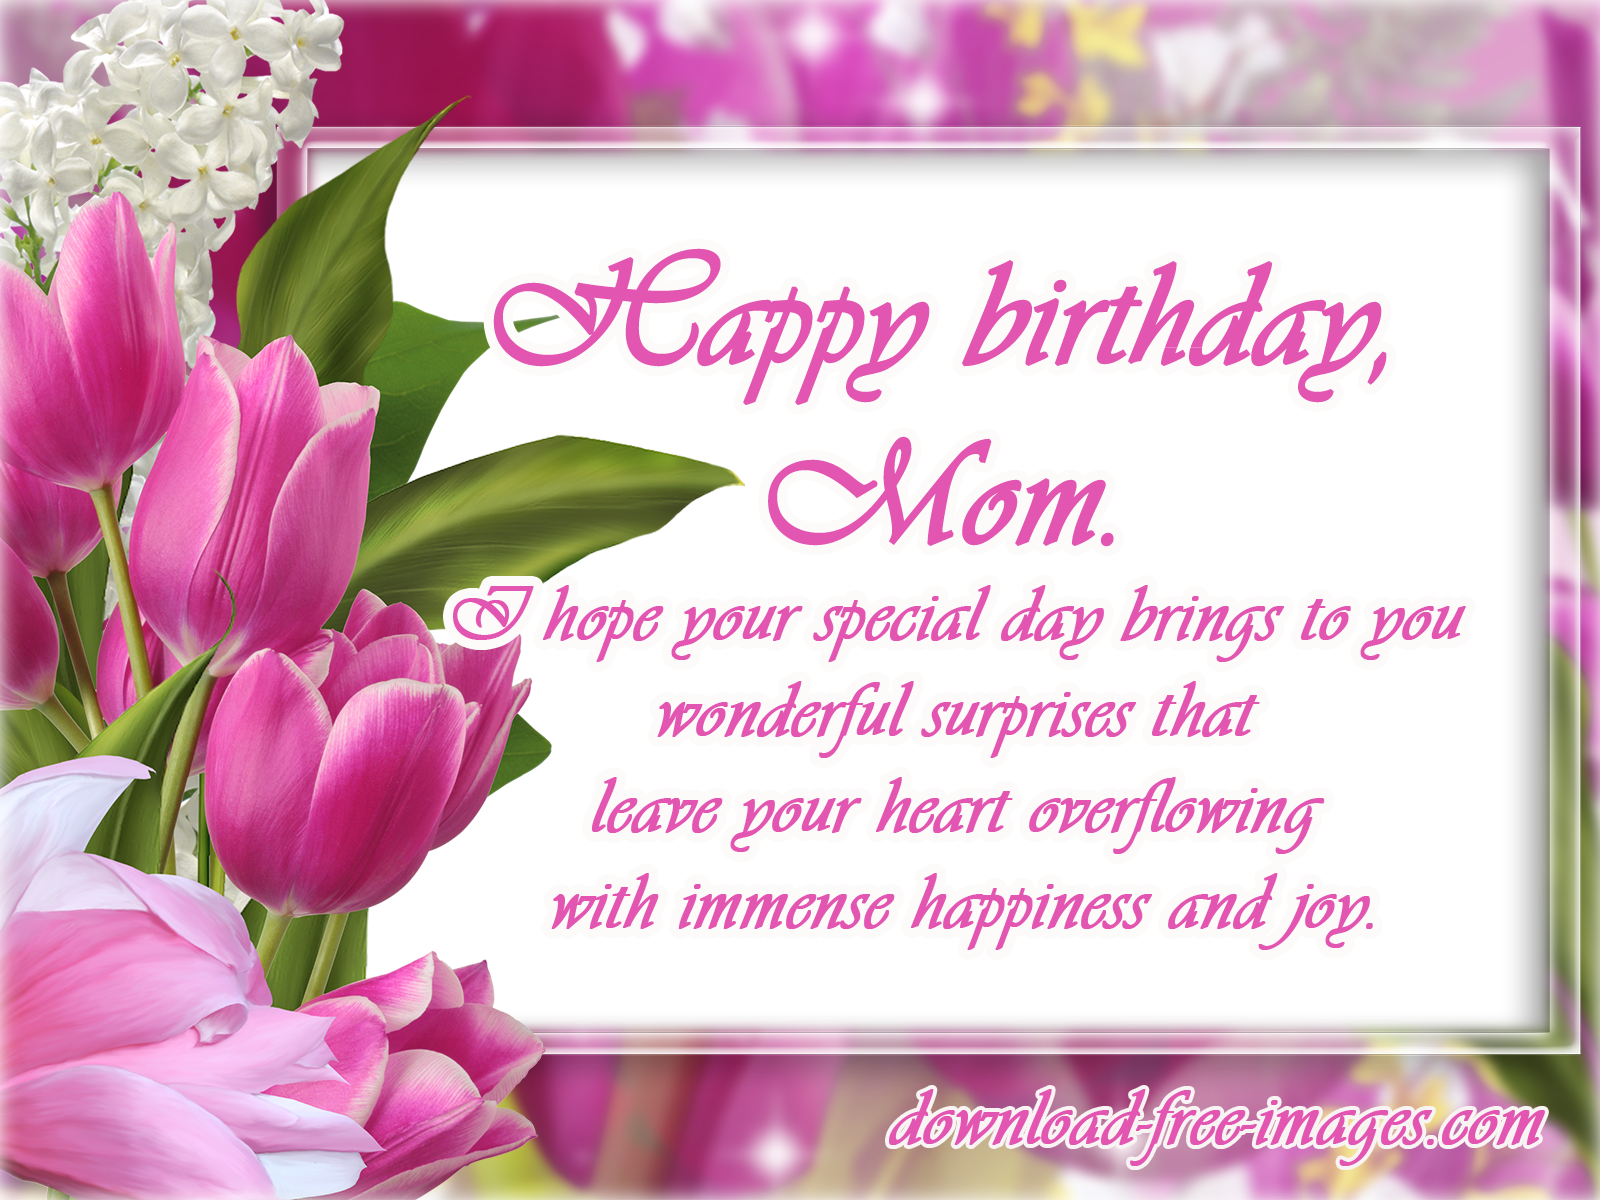 Happy Birthday Wishes For Mom My Mother New Ecard Flowers Tulips